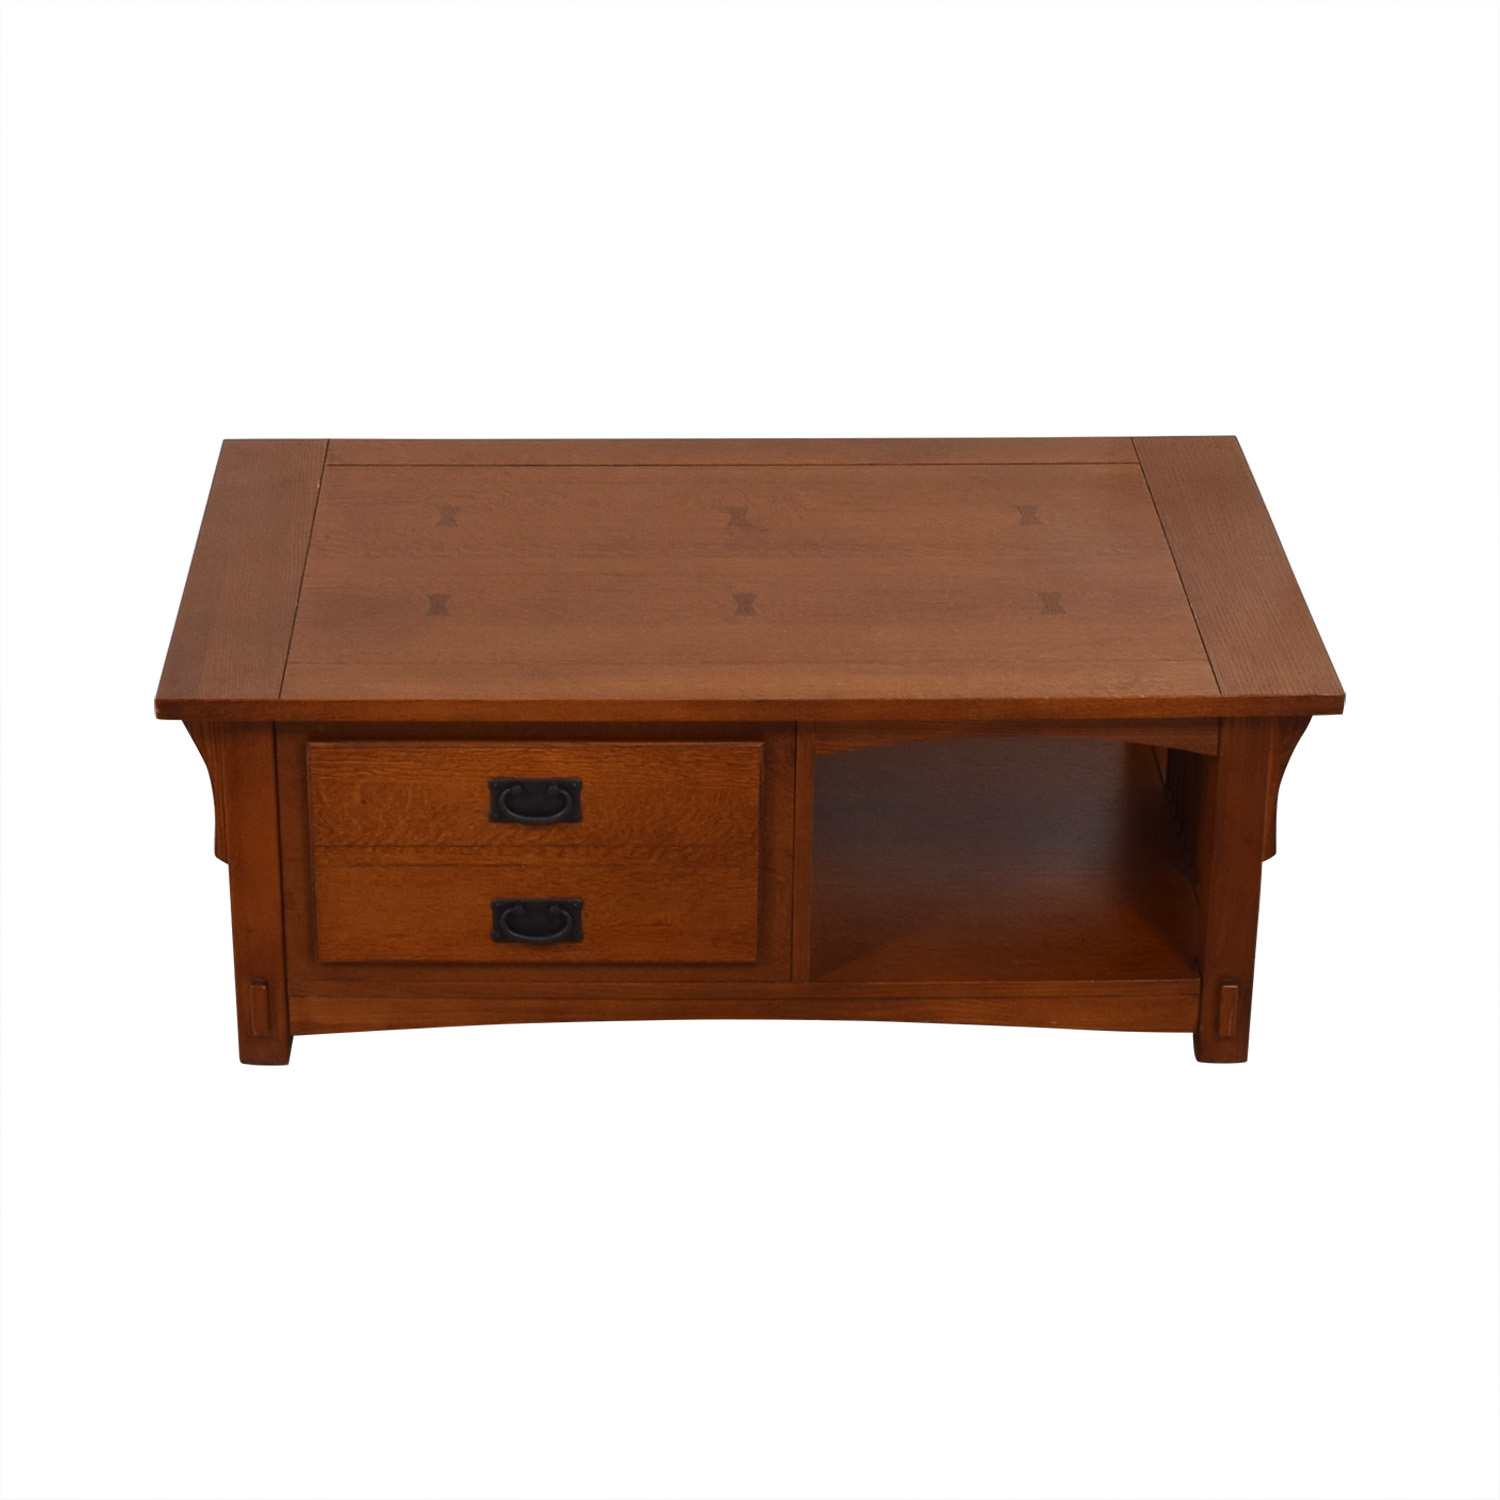 Mission Style Wood Single Drawer Coffee Table for sale